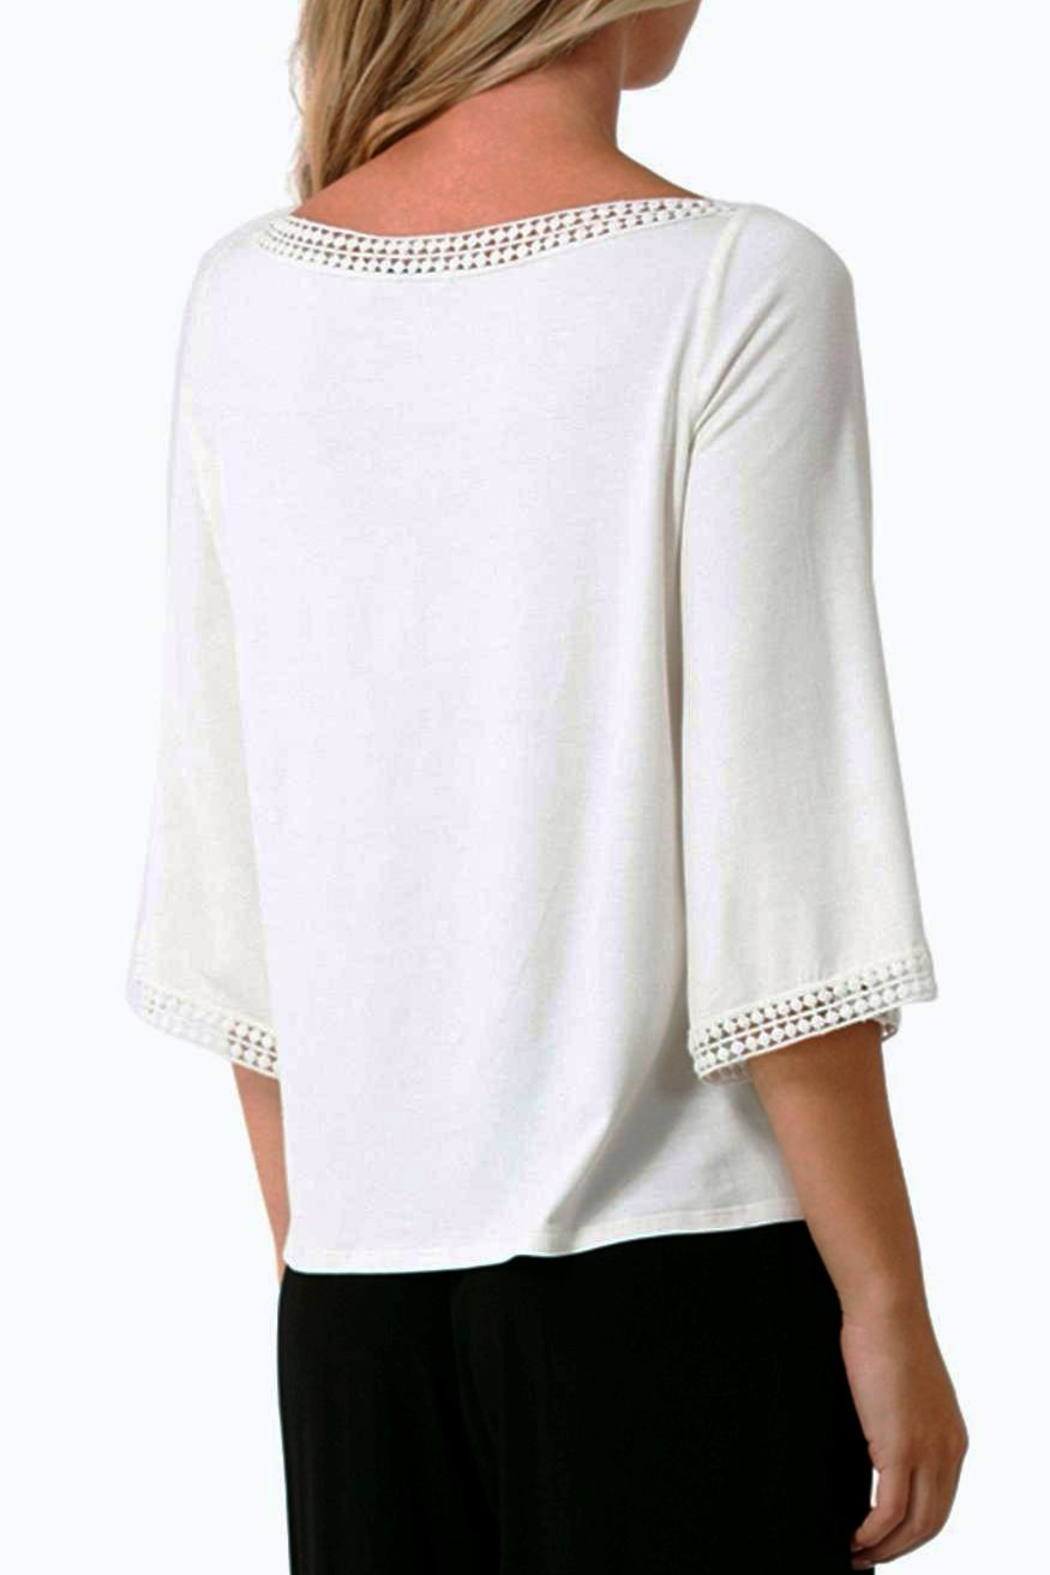 Hale Bob Naoko Crocheted Lace Blouse - Front Full Image